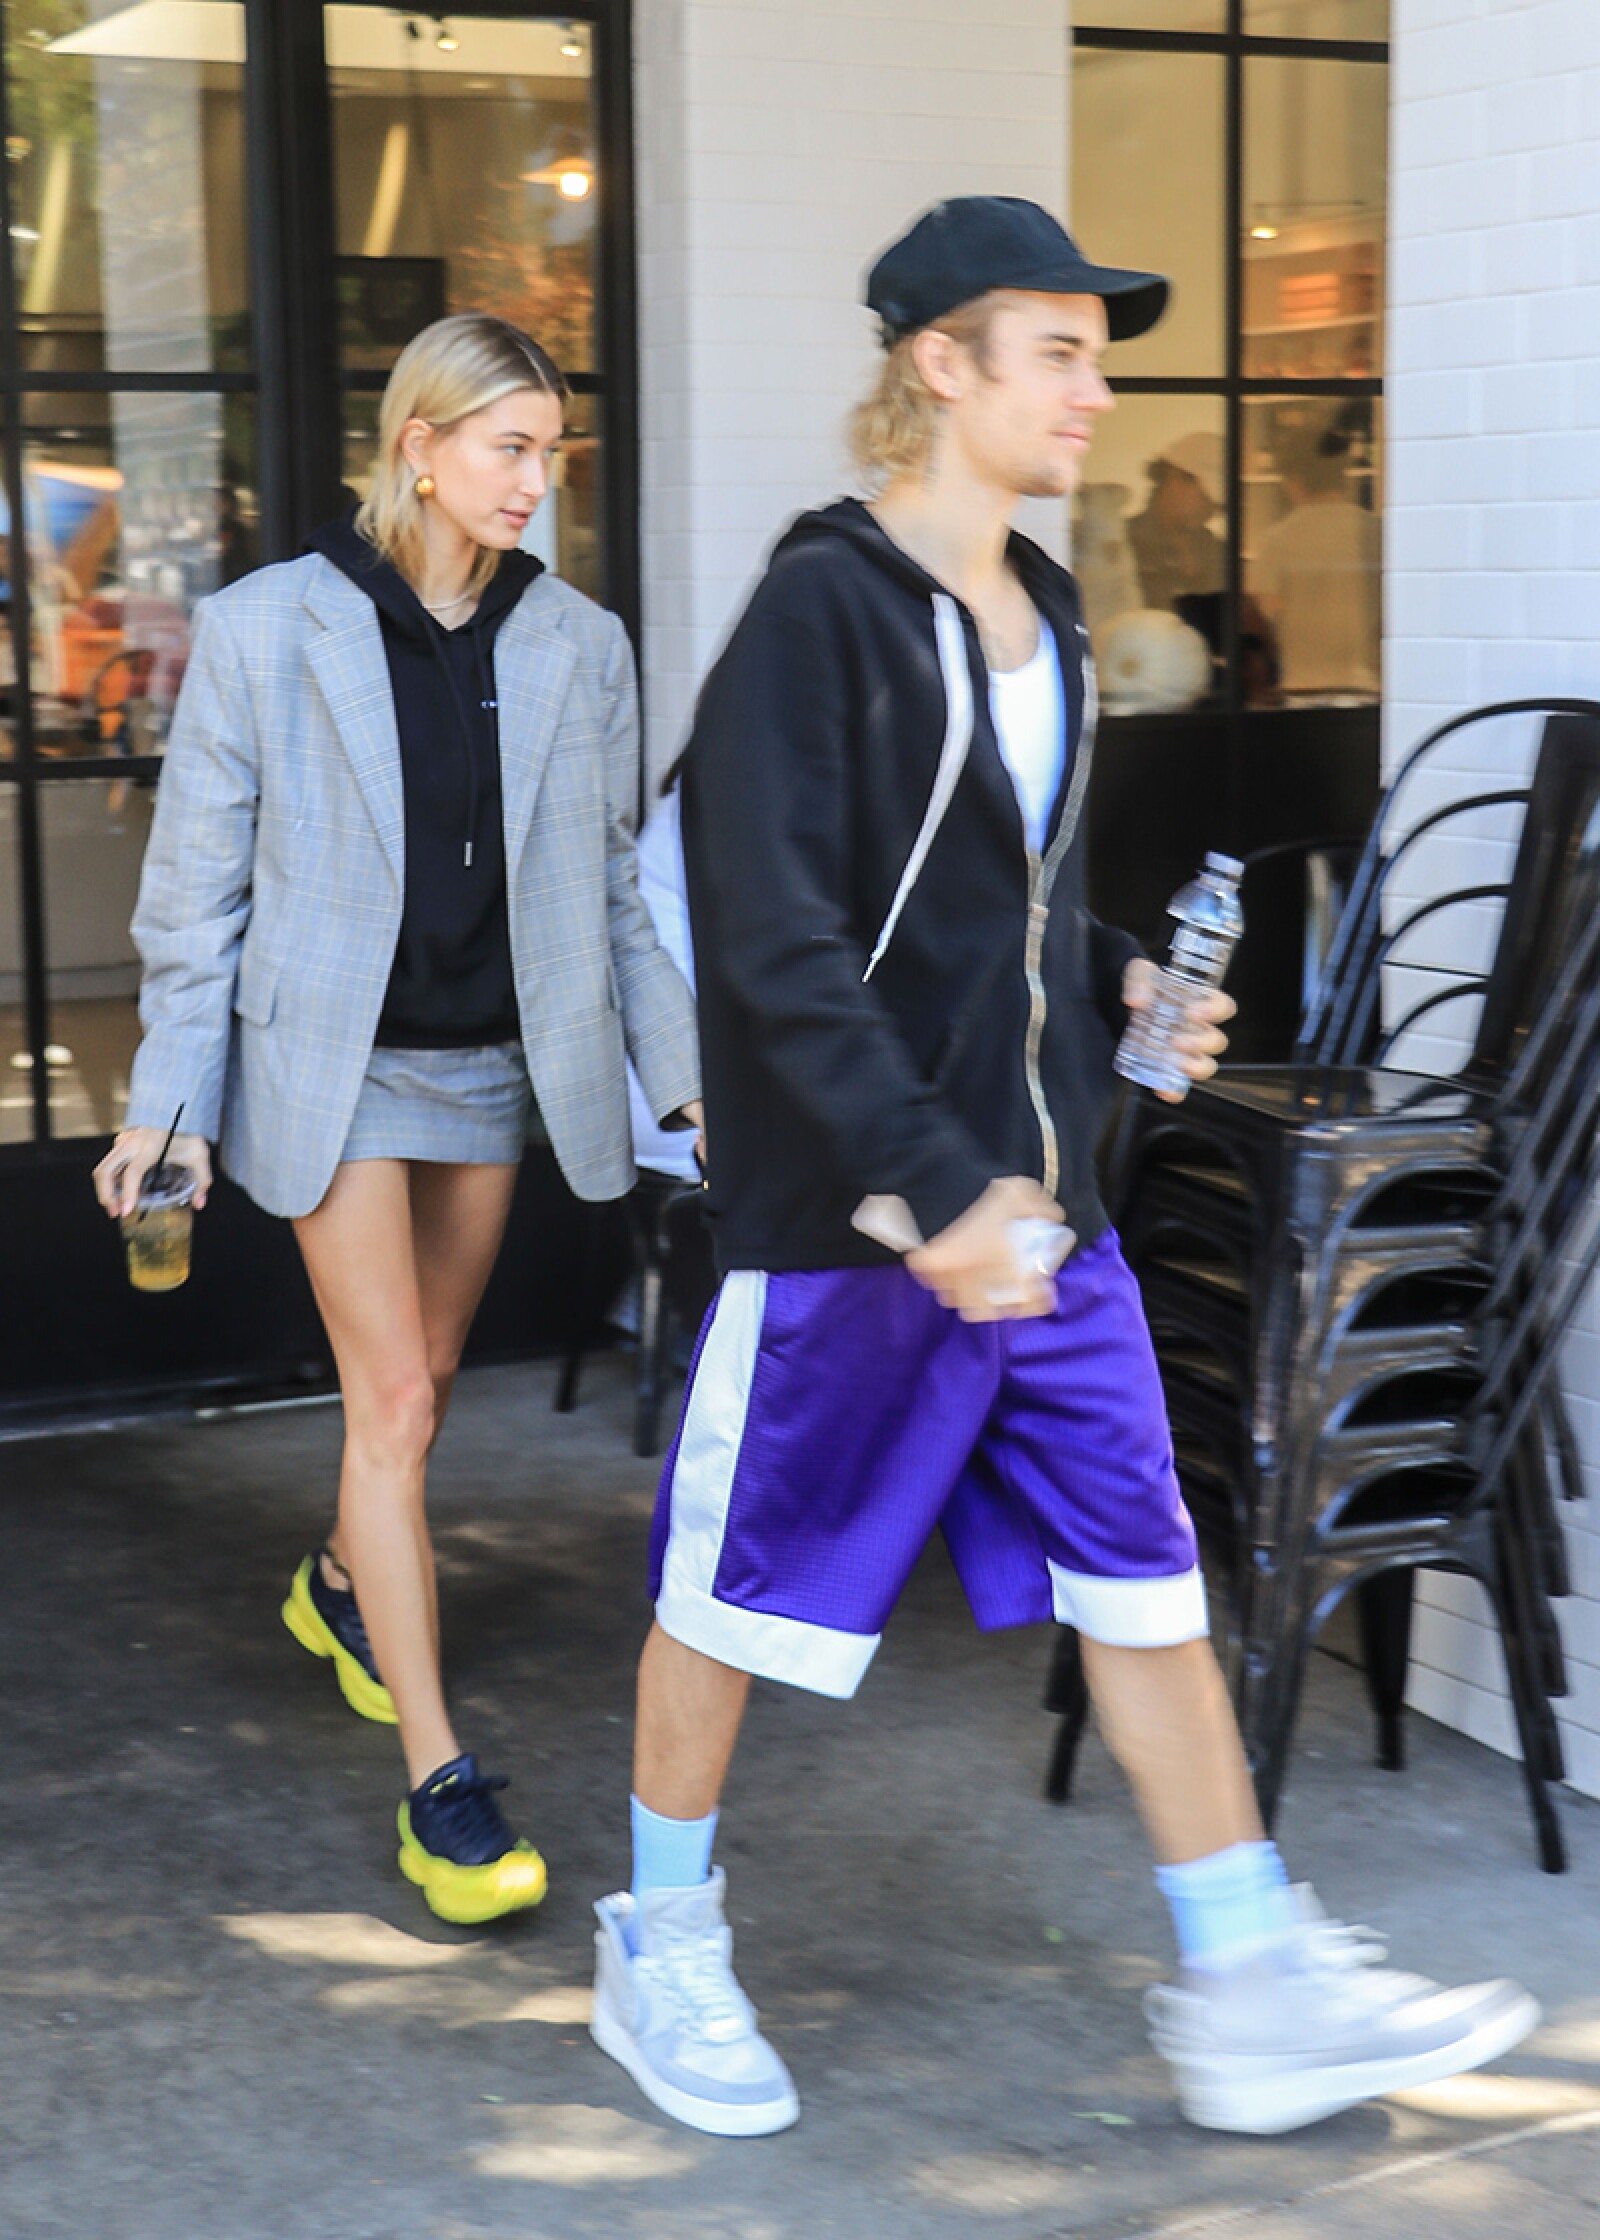 Justin Bieber and Hailey Baldwin out and about, Los Angeles, USA - 16 Oct 2018